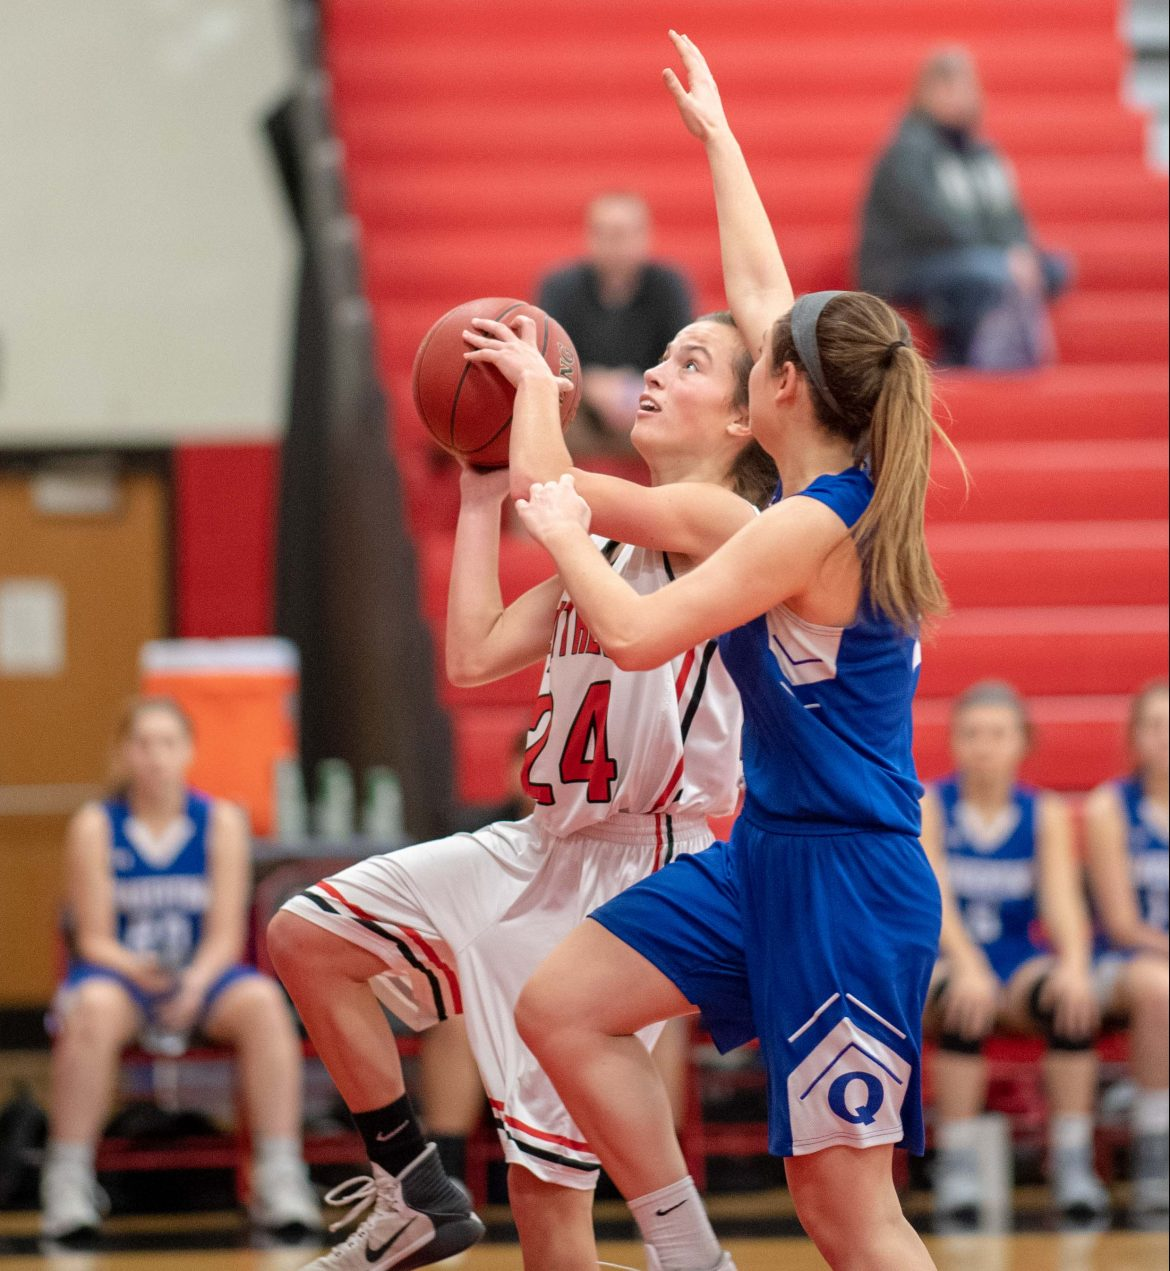 Saucon Valley Girls Basketball